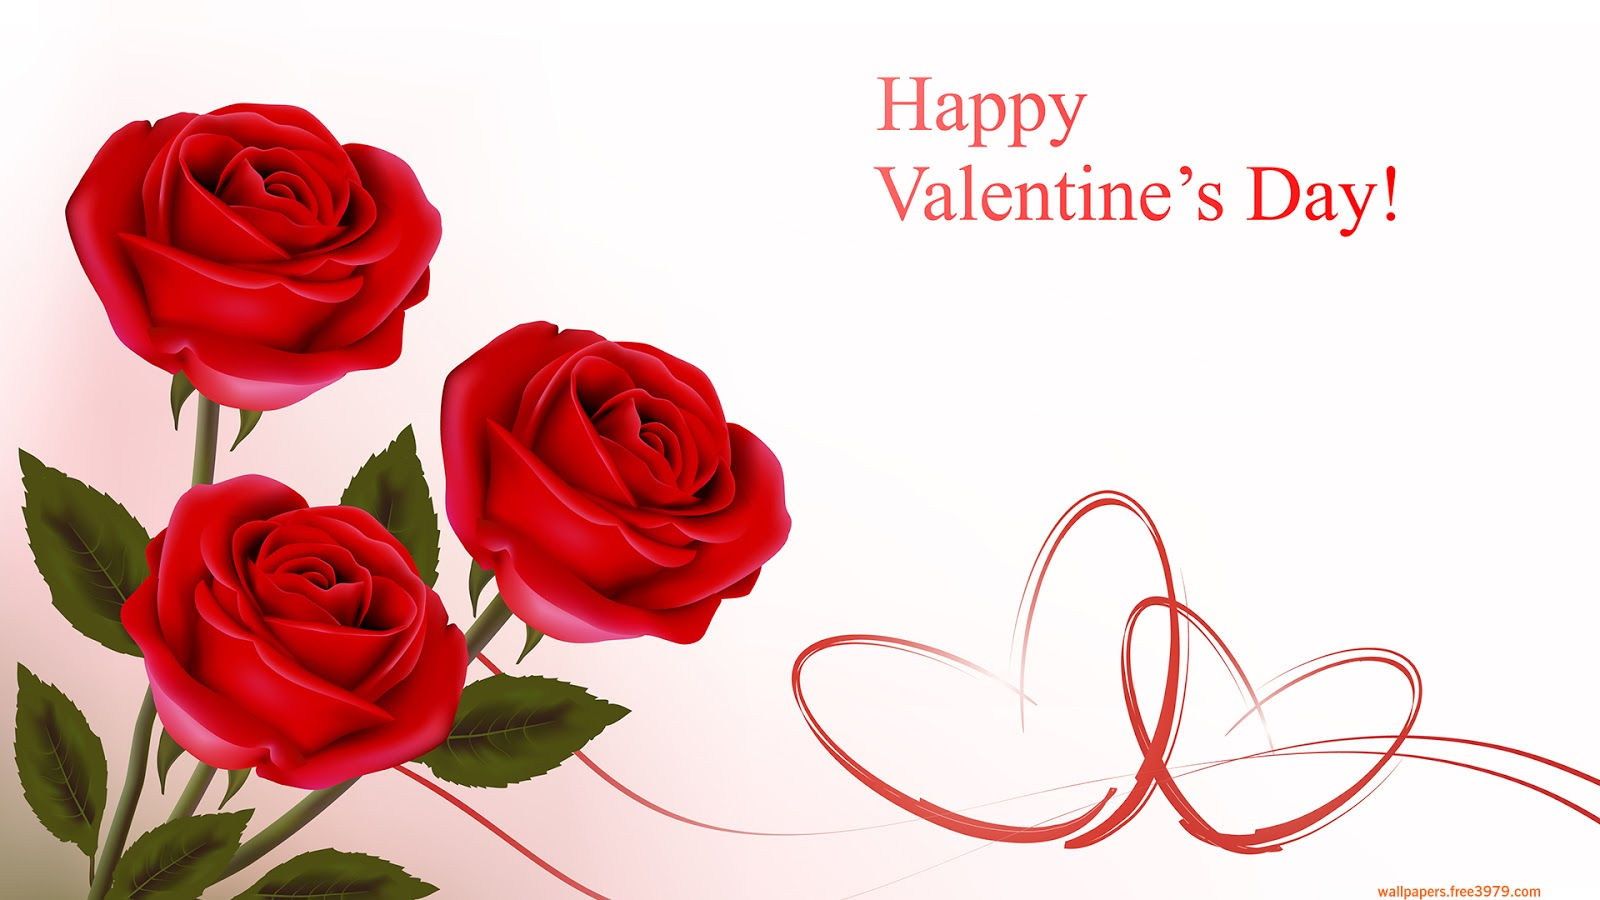 Wallpapers Wallpaper Happy Valentines Day 14 02